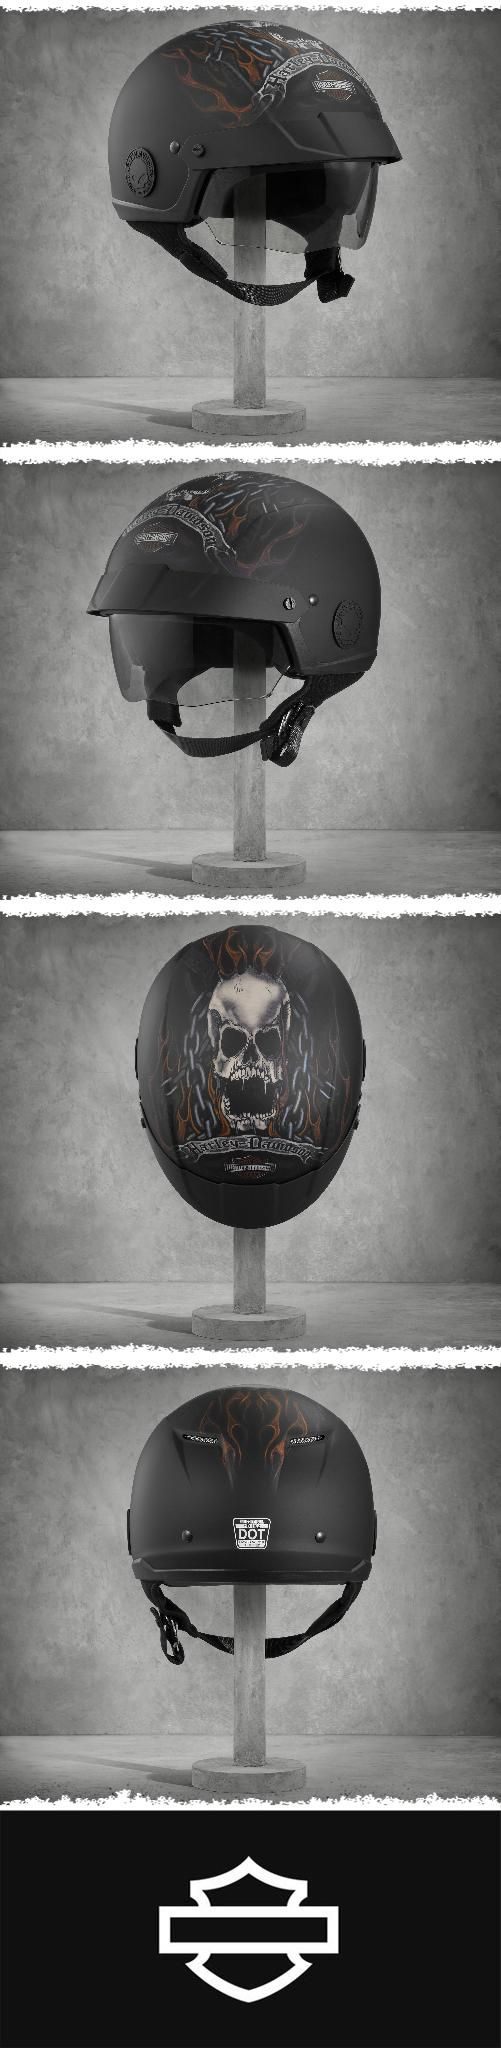 This matte black motorcycle half helmet has more going for it than an awesome, drooling skull. | Harley-Davidson Shields Avenue Sun Shied H02 Half Helmet